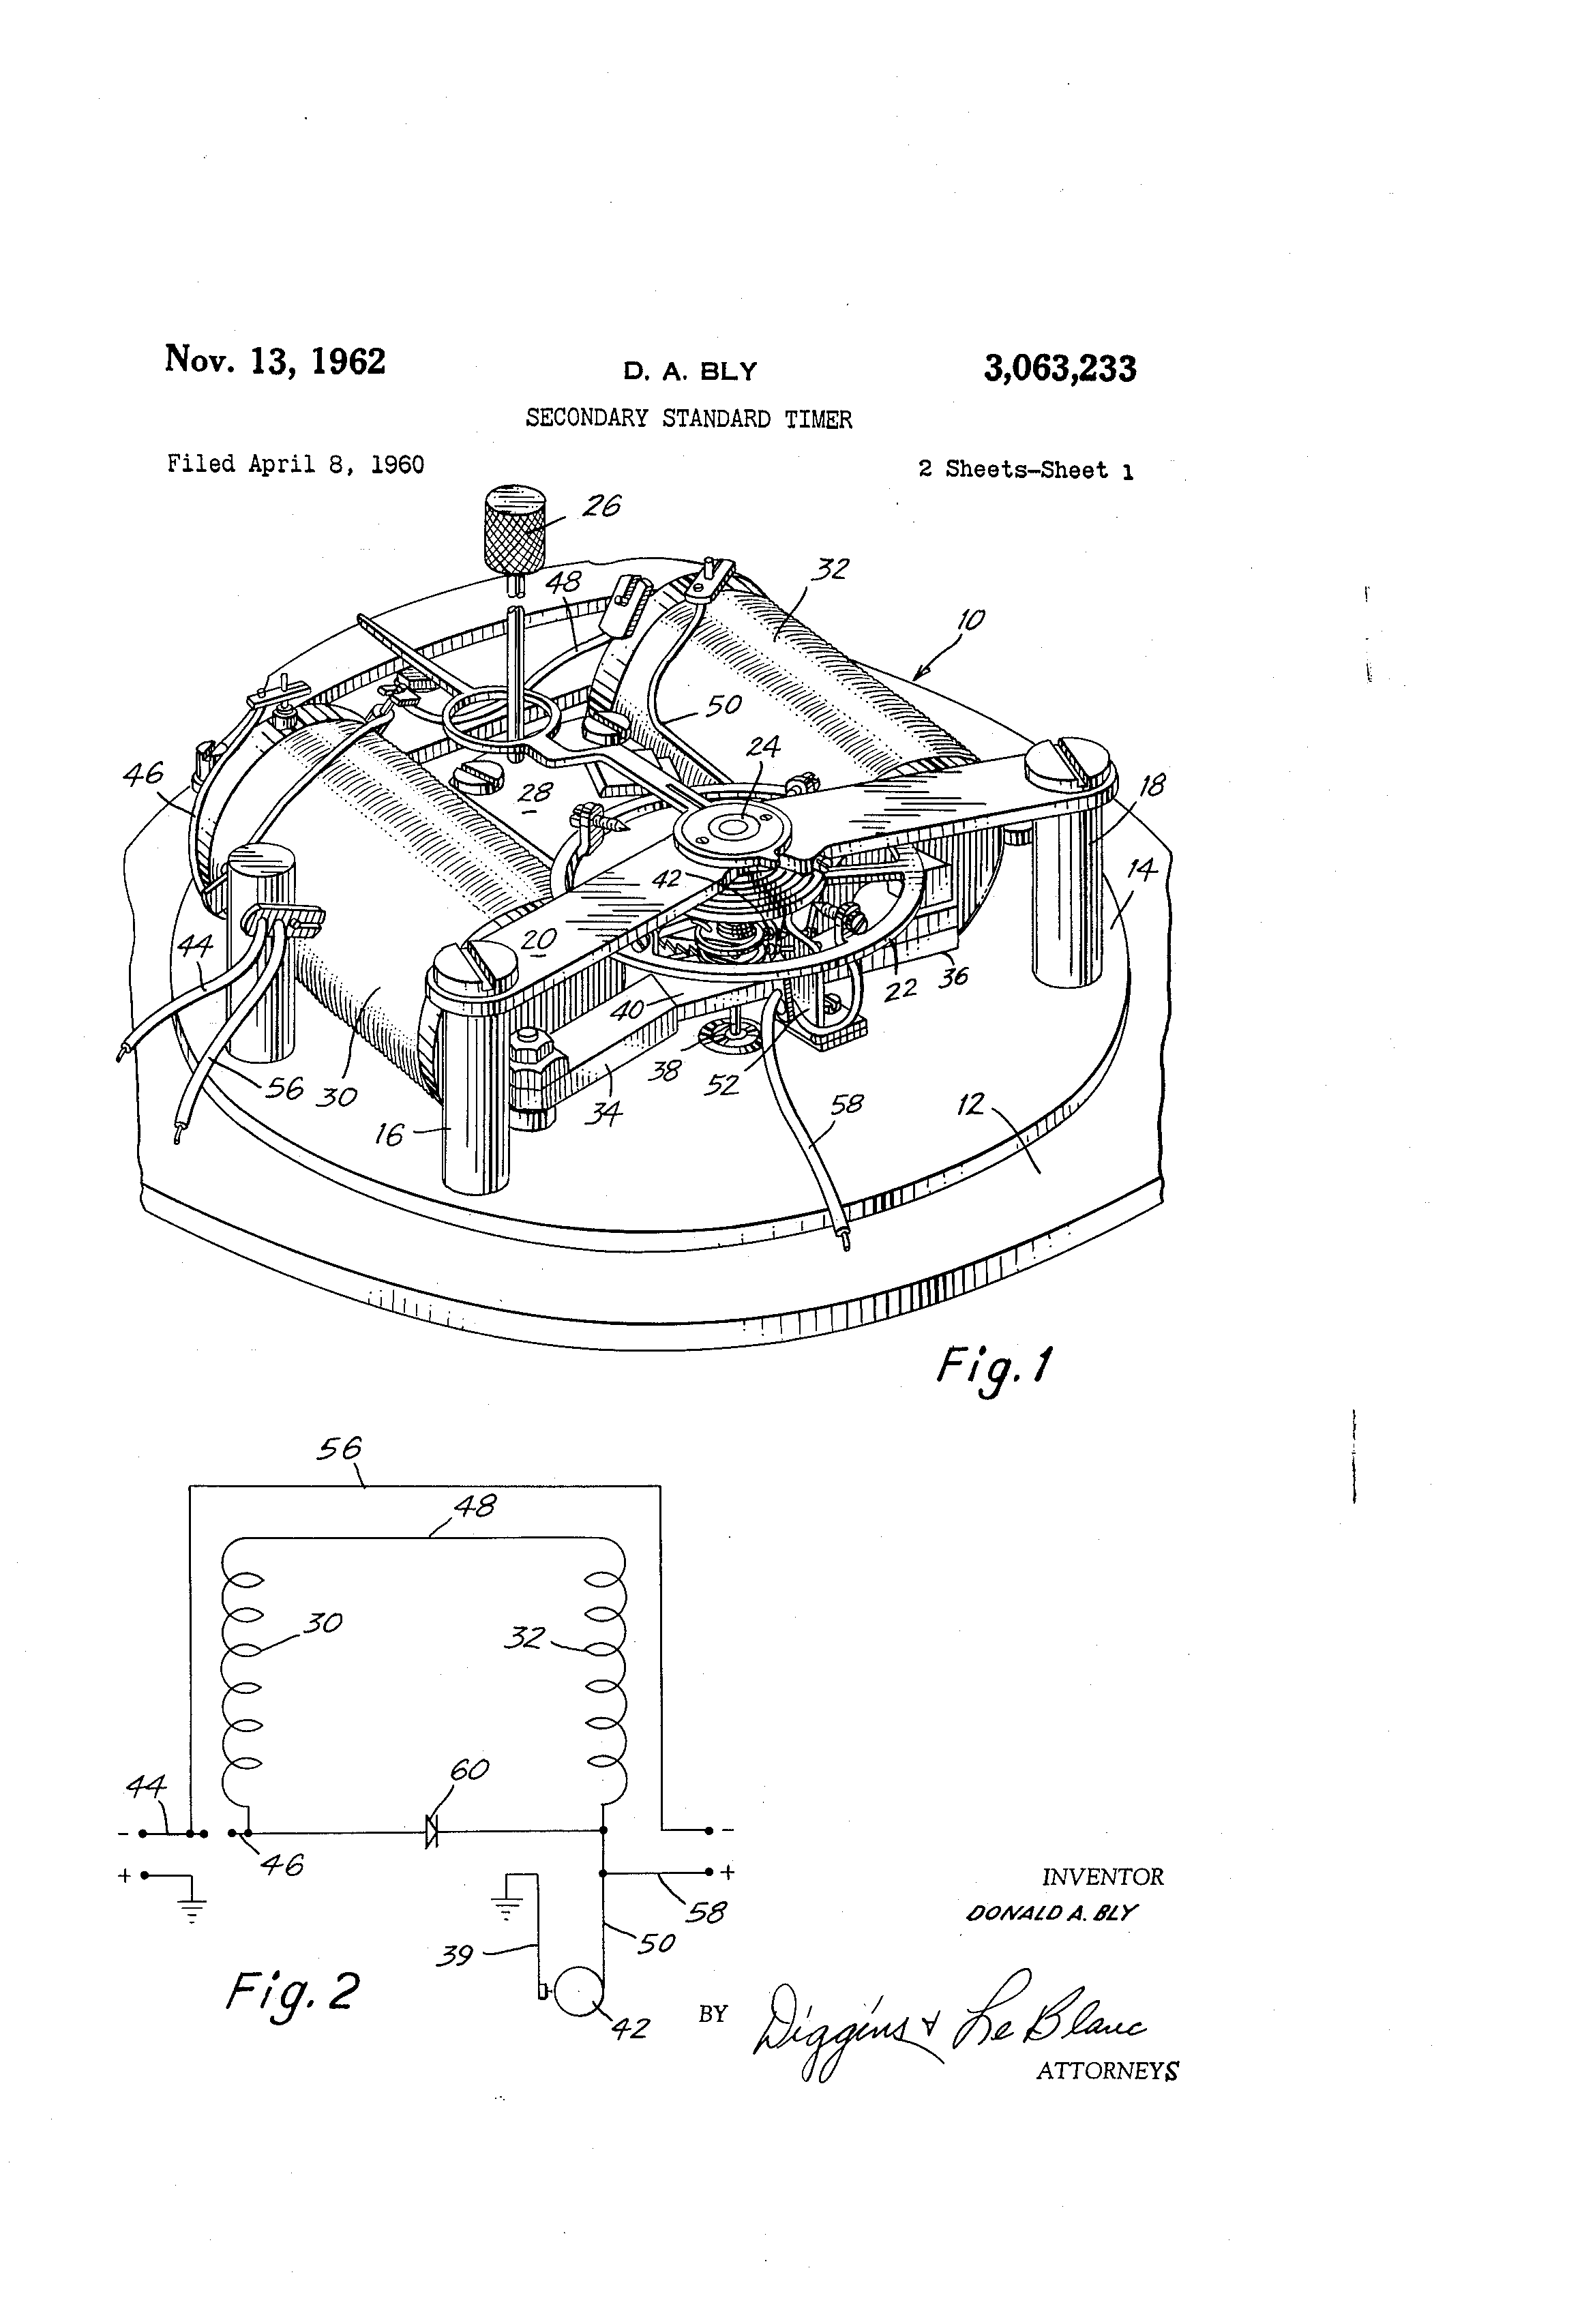 Patent Secondary Standard Timer by Donald A. Bly Issued